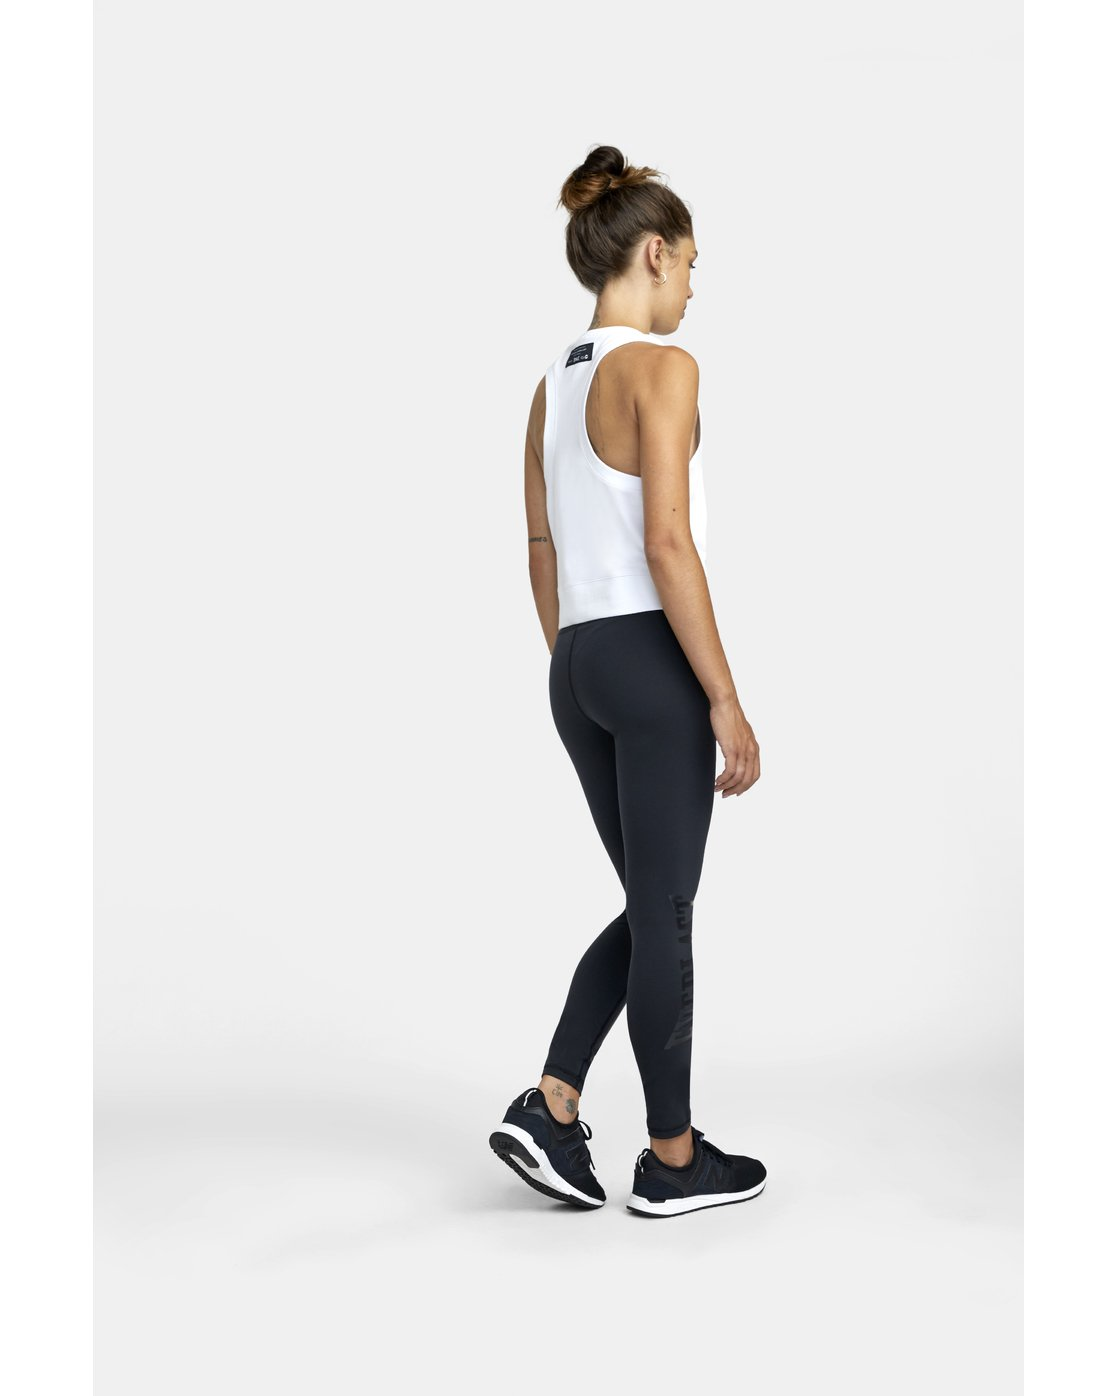 4 EVERLAST SPORT WORKOUT LEGGING Black TQ163REL RVCA